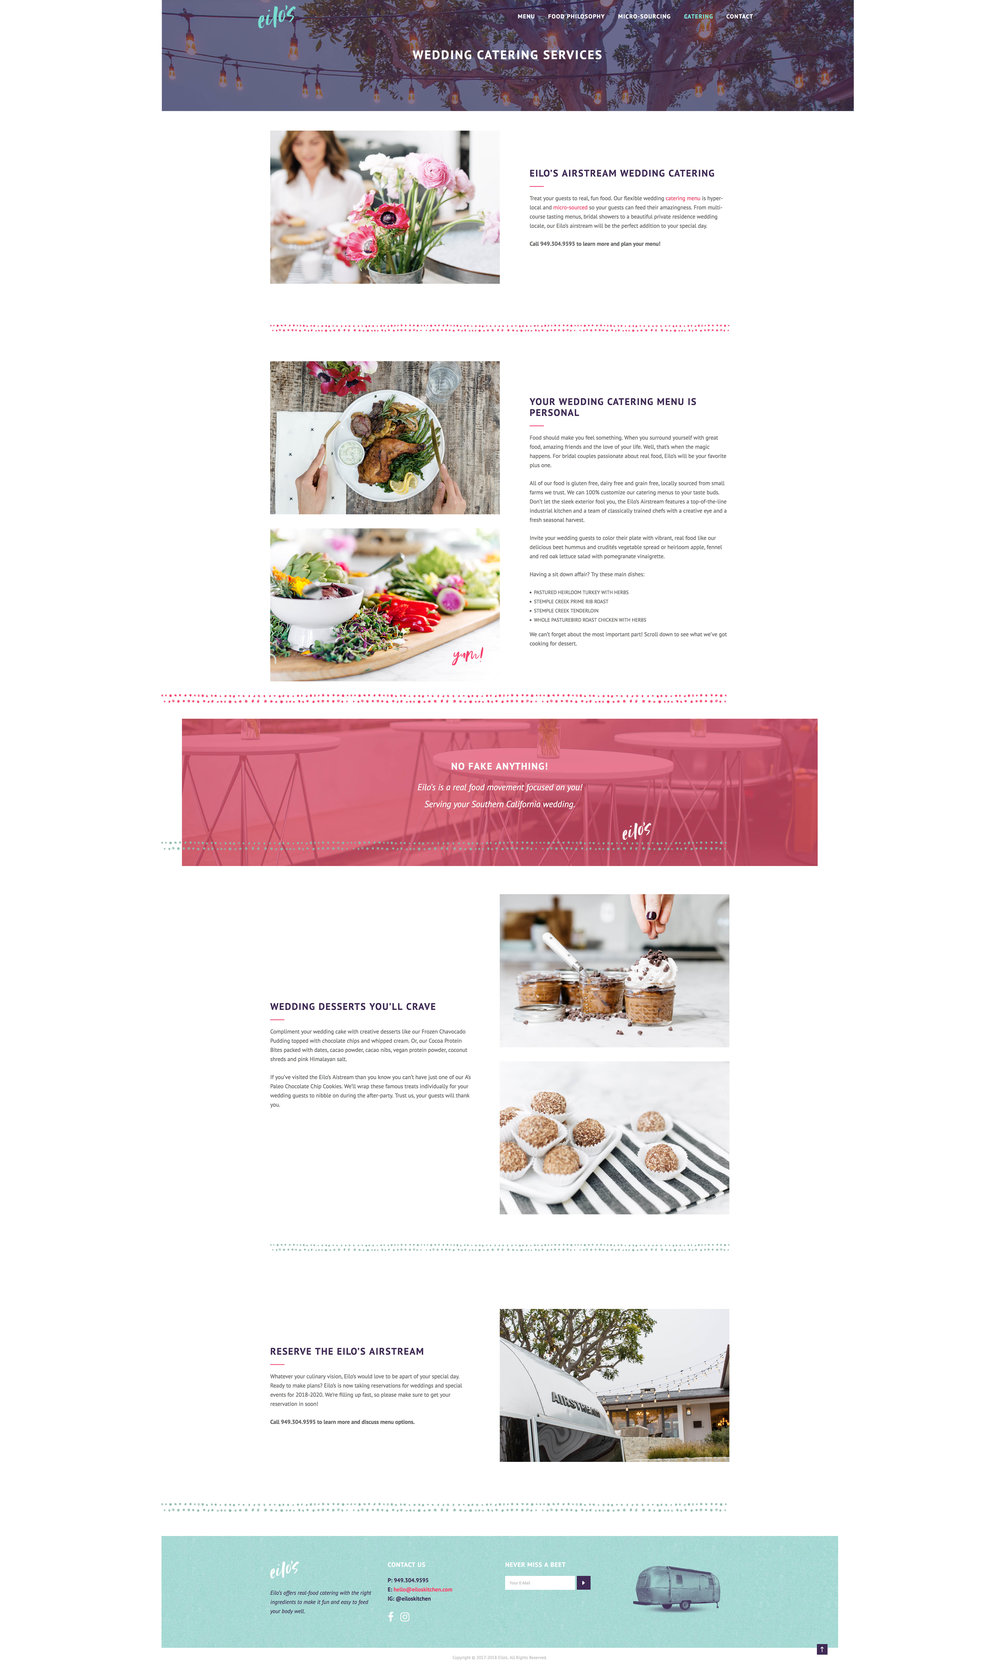 Restaurant Marketing Agency | SEE IT SIDEWAYS